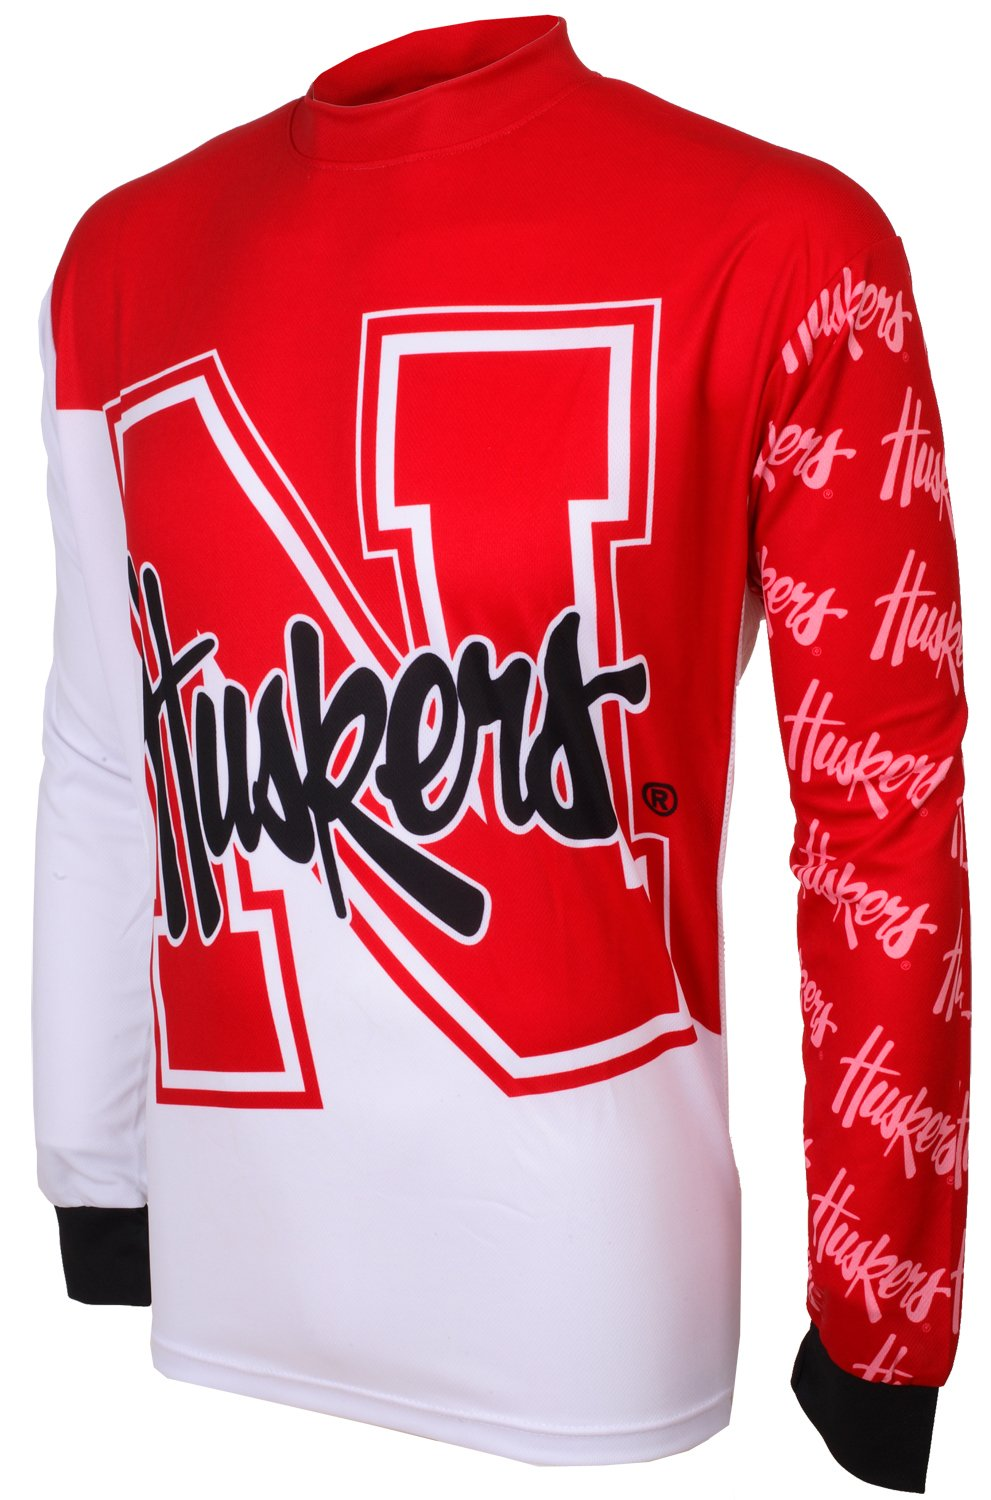 Adrenaline Promotions NCAA Nebraska Cornhuskers Mountain Bike Jersey